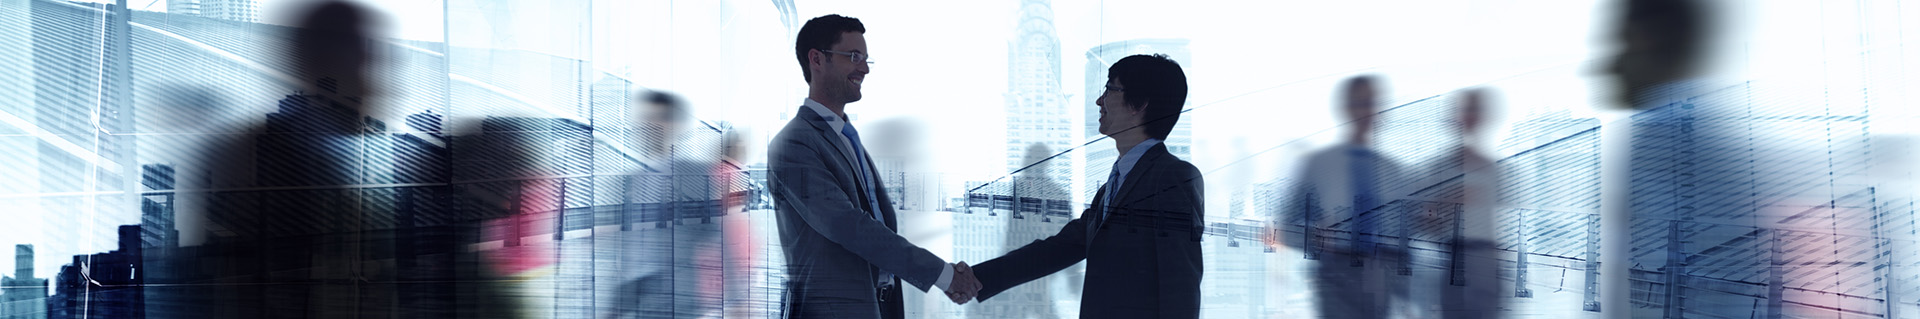 Two businessmen shaking hands in front of cityscape